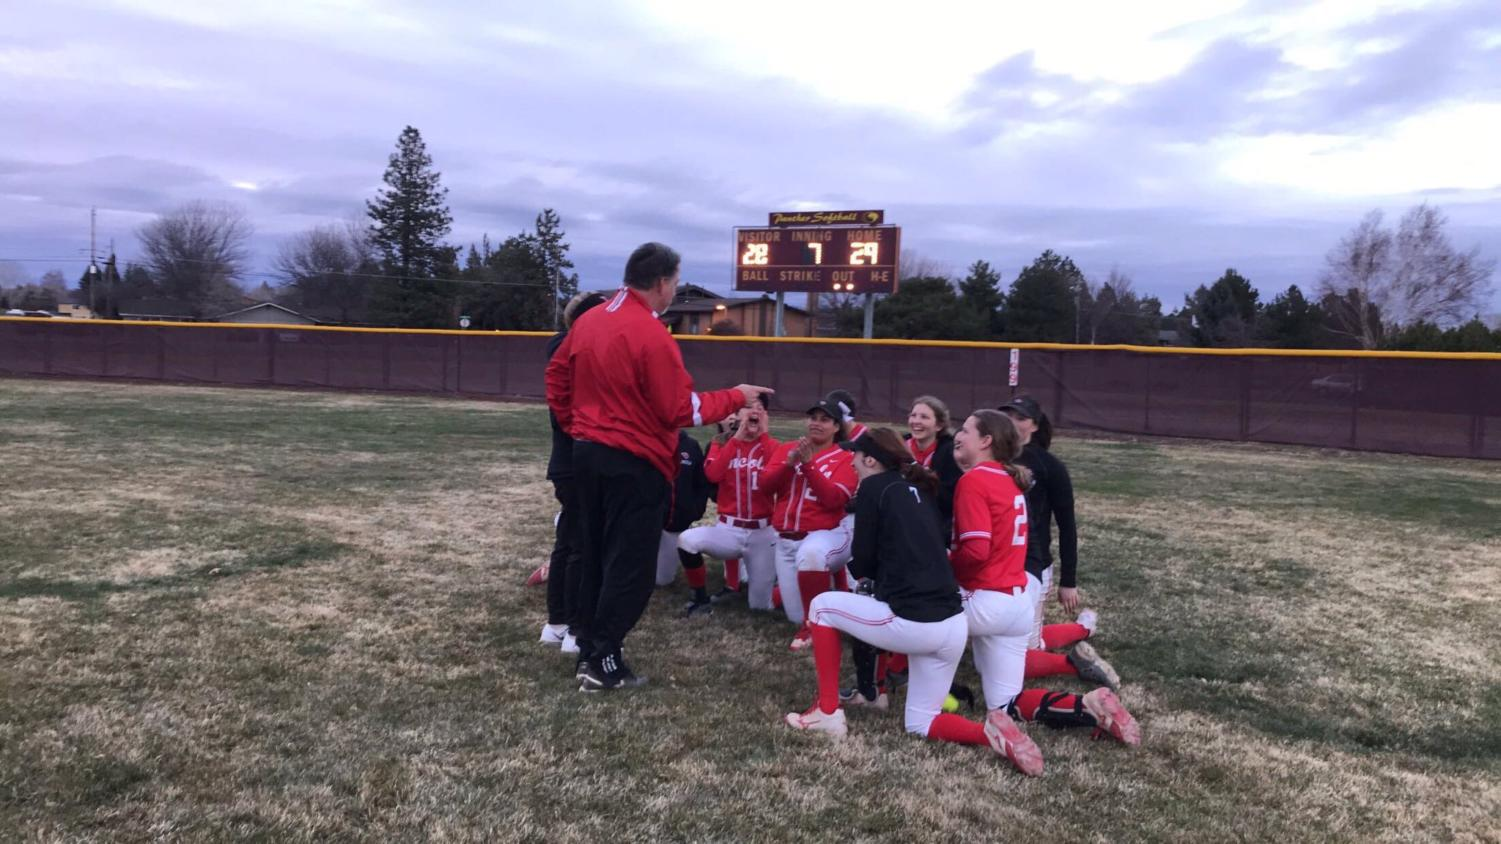 The softball team celebrates after a 29-28 comeback win over Summit High School during a tournament in Bend. The team is ranked 29th in the state.